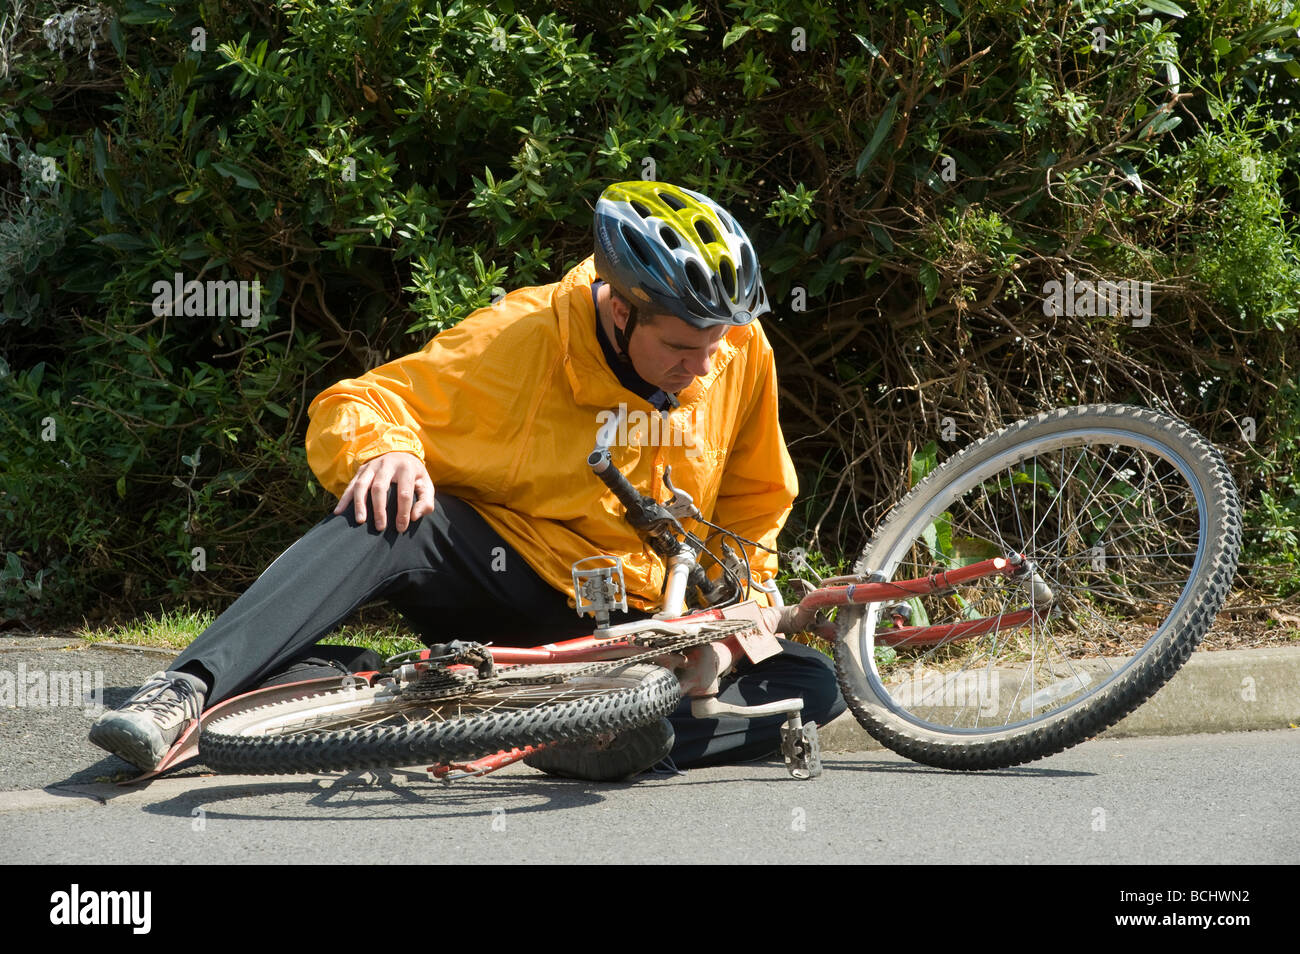 cyclist accident stockfotos cyclist accident bilder alamy. Black Bedroom Furniture Sets. Home Design Ideas